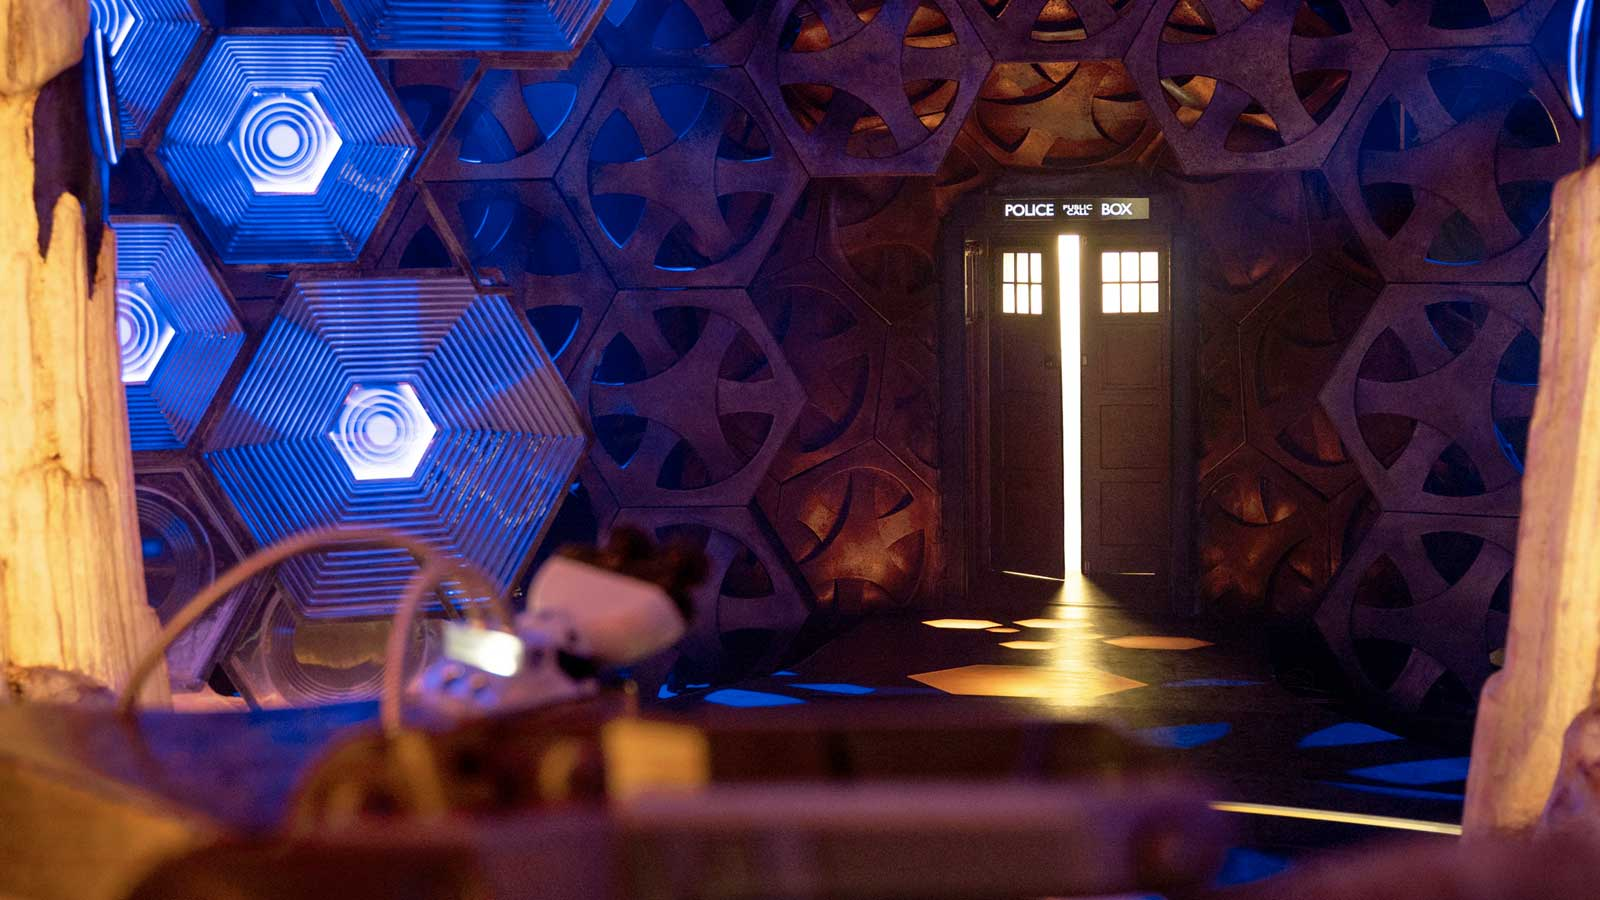 The 13th Doctor's TARDIS